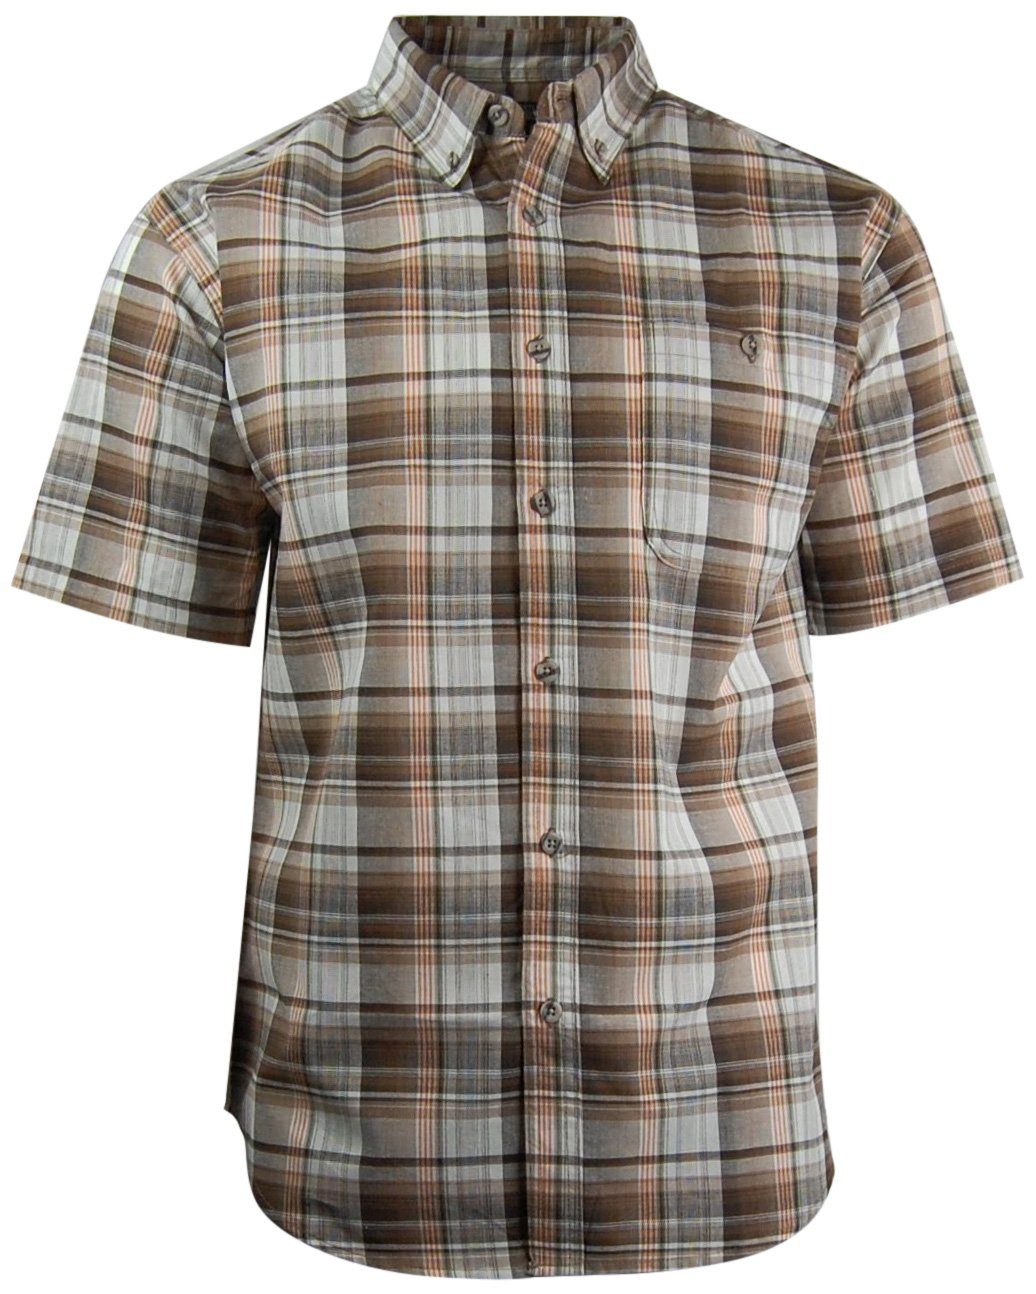 Canyon Guide Men's Plaid Short Sleeve Button Down Casual Shirt (2X-Large, Brown)